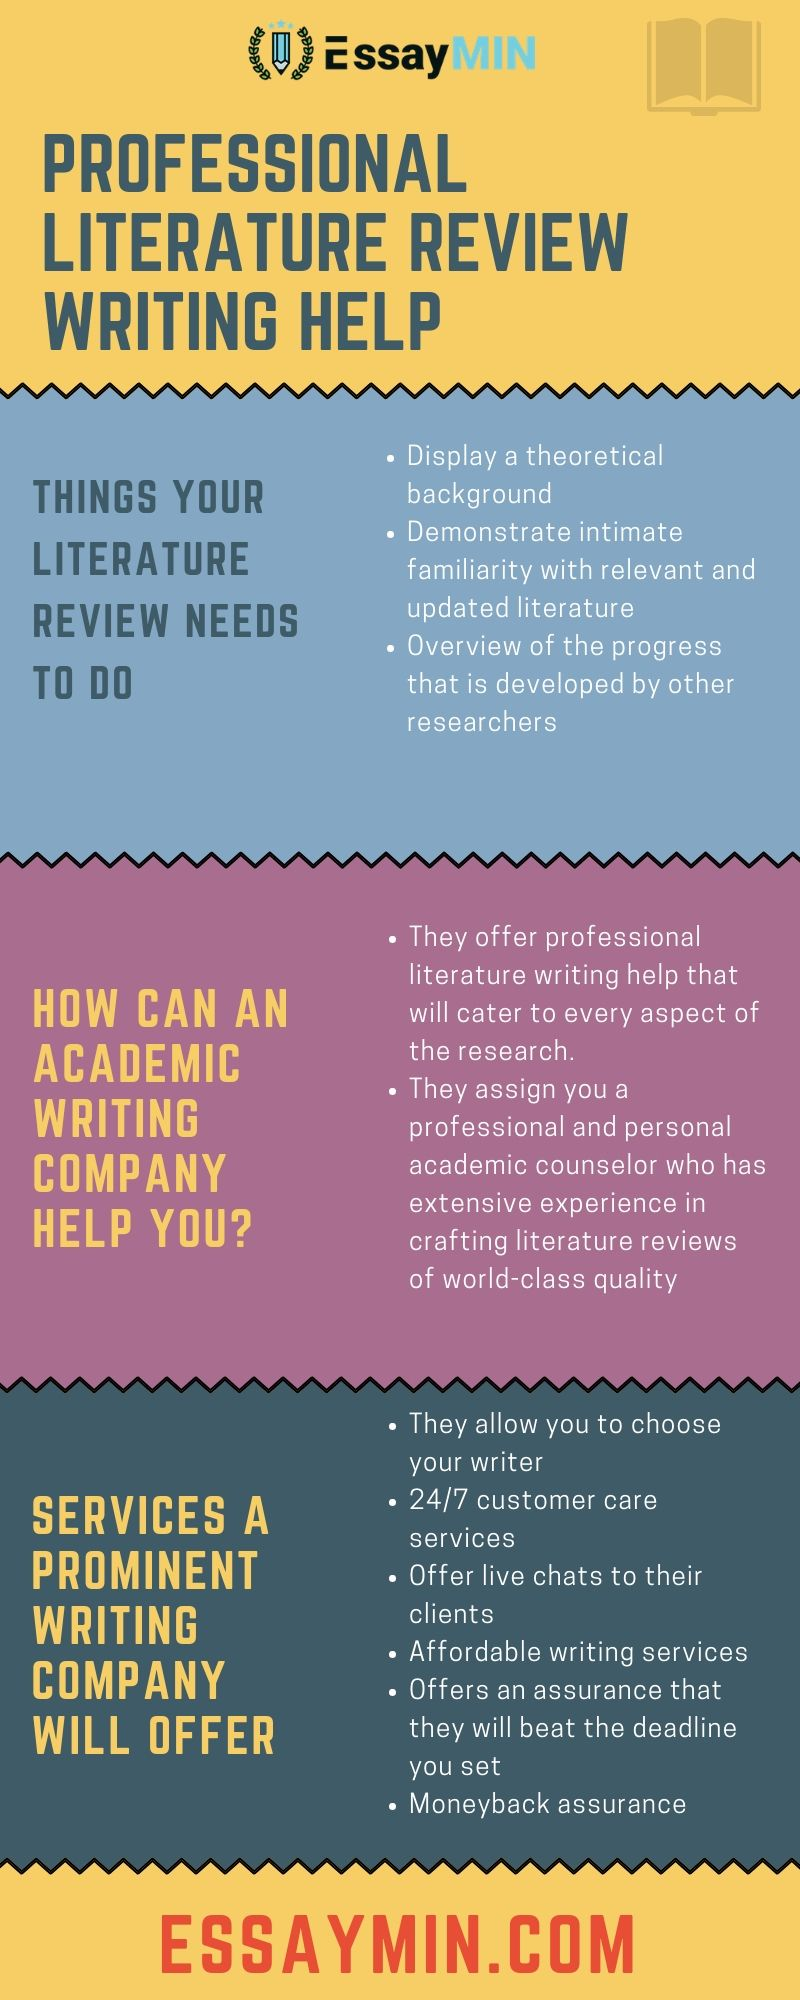 Professional literature review must include a well